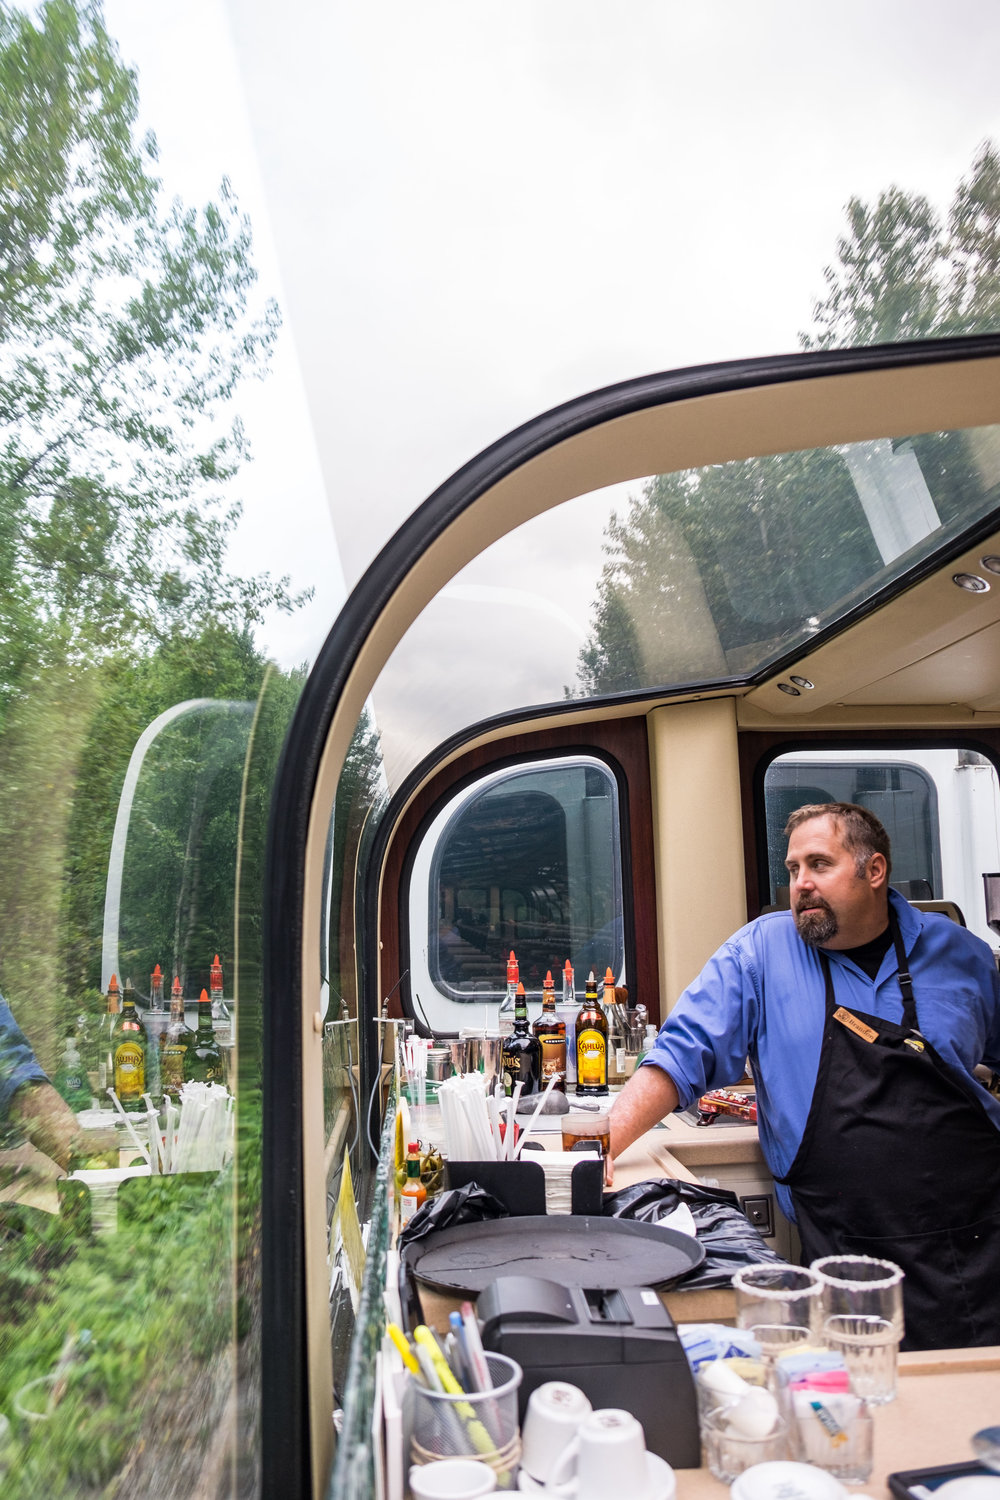 To the delight of passengers on the Wilderness Express, there is cocktail service (and an awesome staff serving it up)!